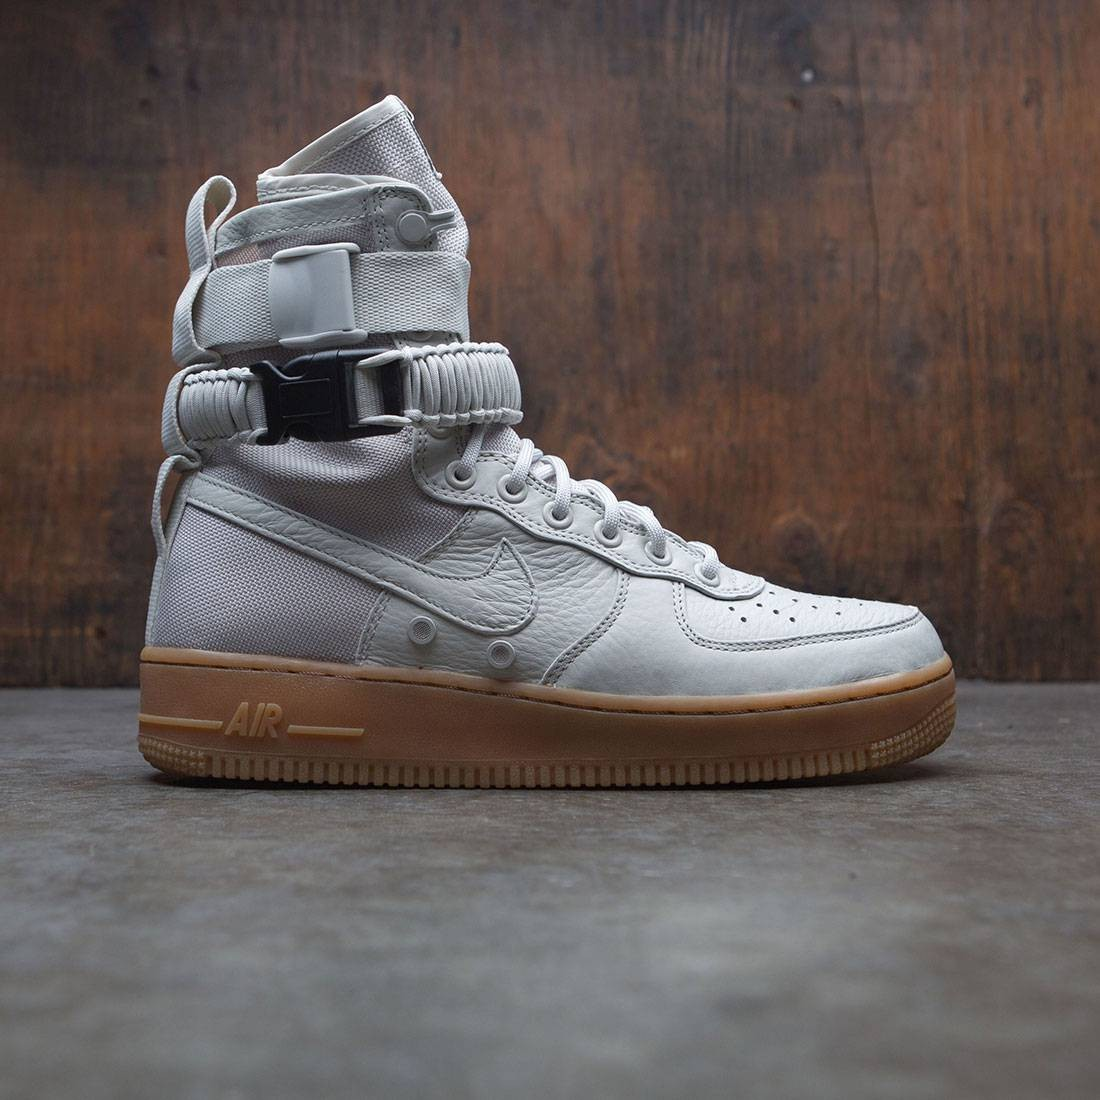 nike women sf air force 1 grey light bone gum med brown 0145c04af5